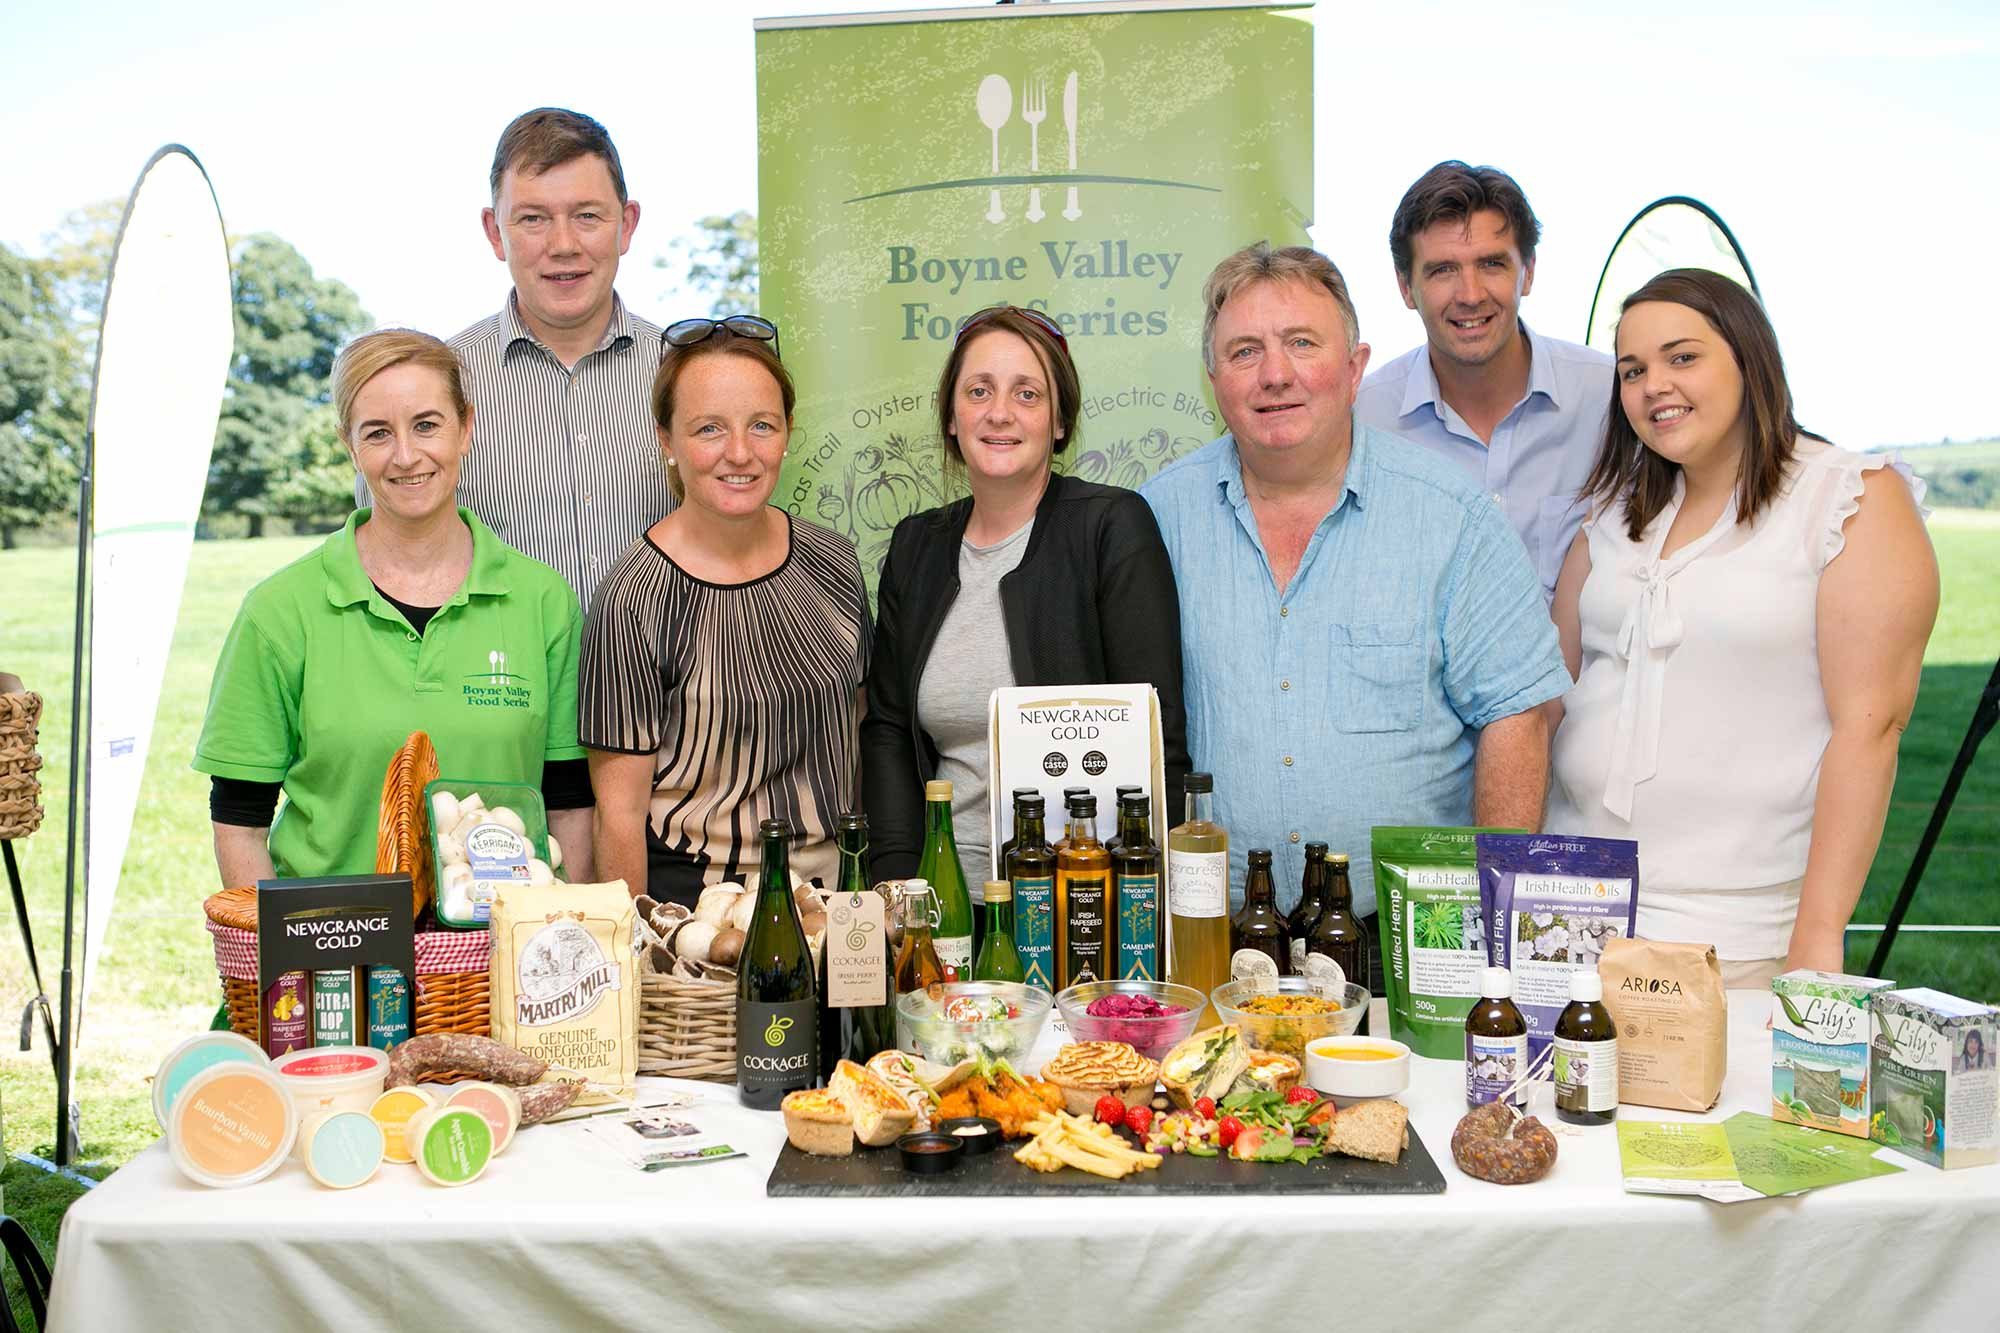 Members of the award winning Boyne Valley Food Series at the at the launch   The 2016 Point to Point and Country Fair at Dowth which will take place on Sunday 30 th  October.